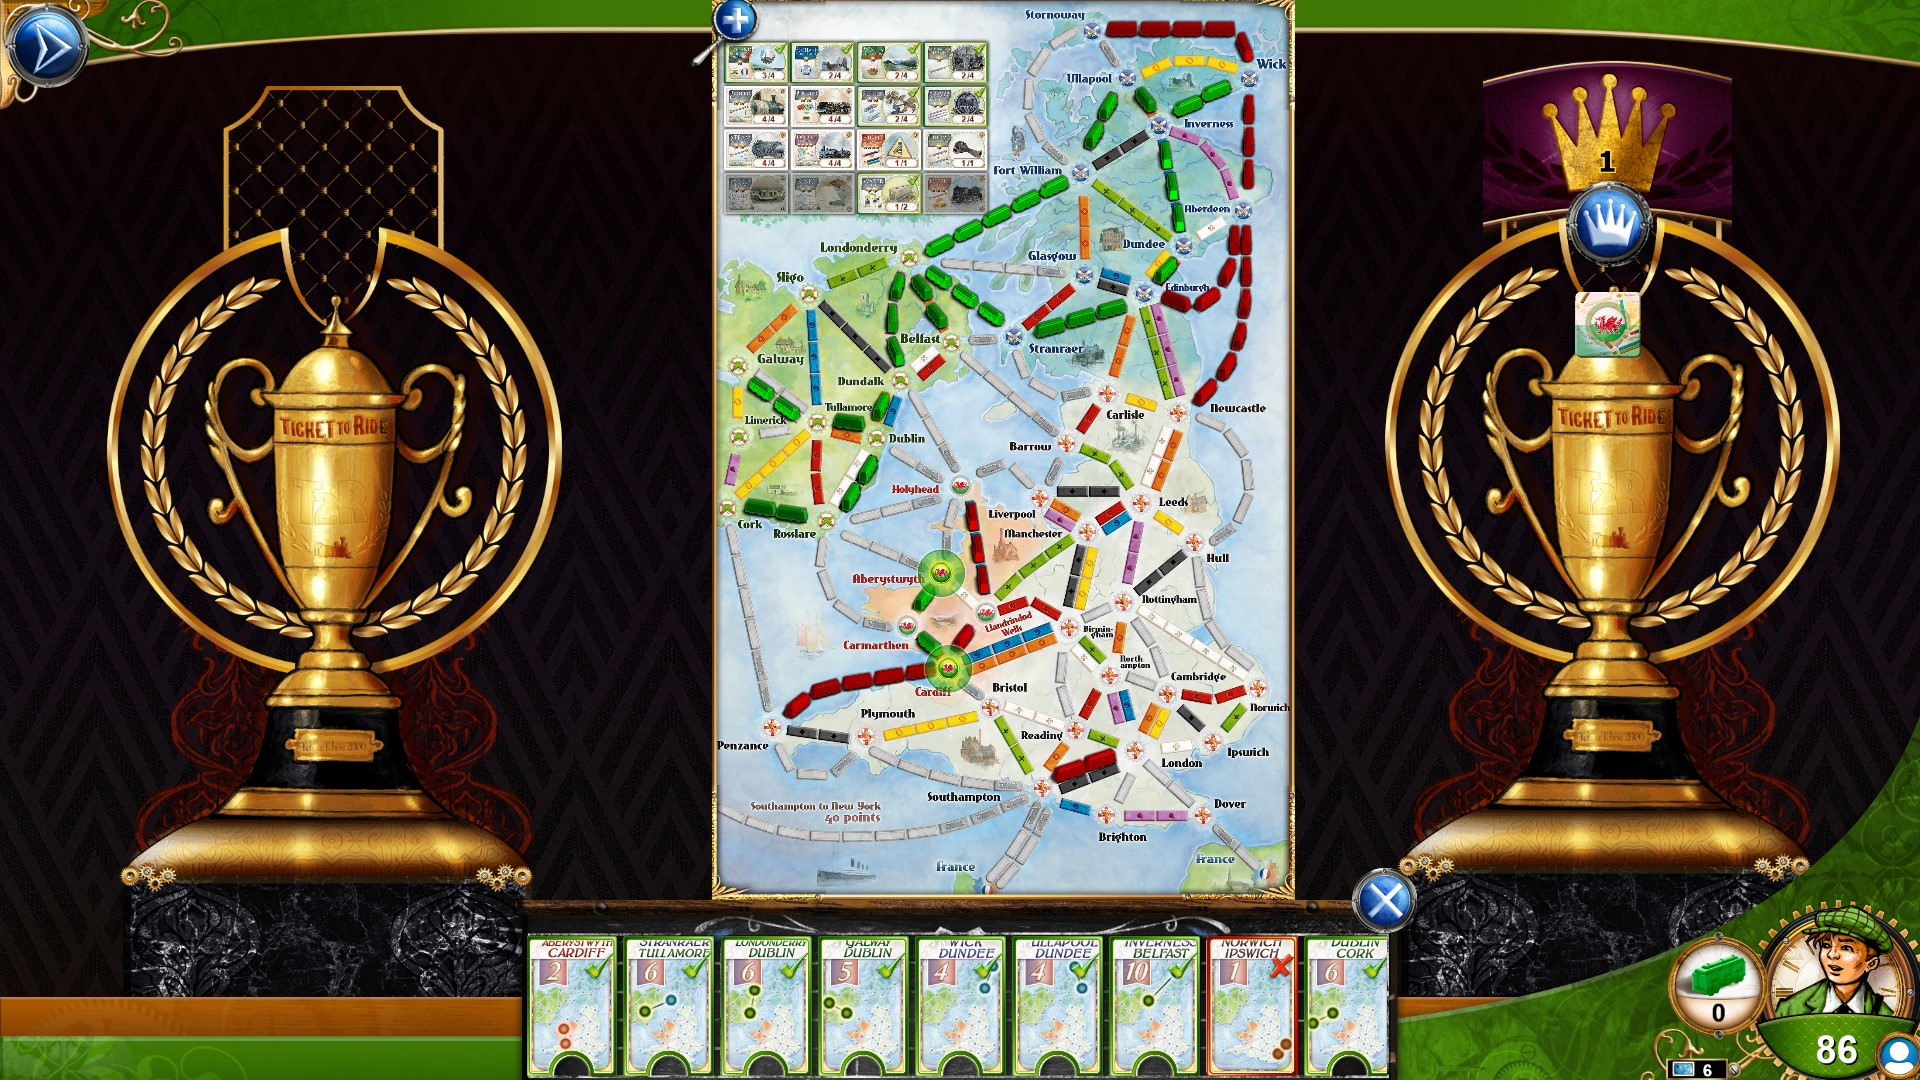 Ticket to ride asia horse betting legit sports betting websites trusted